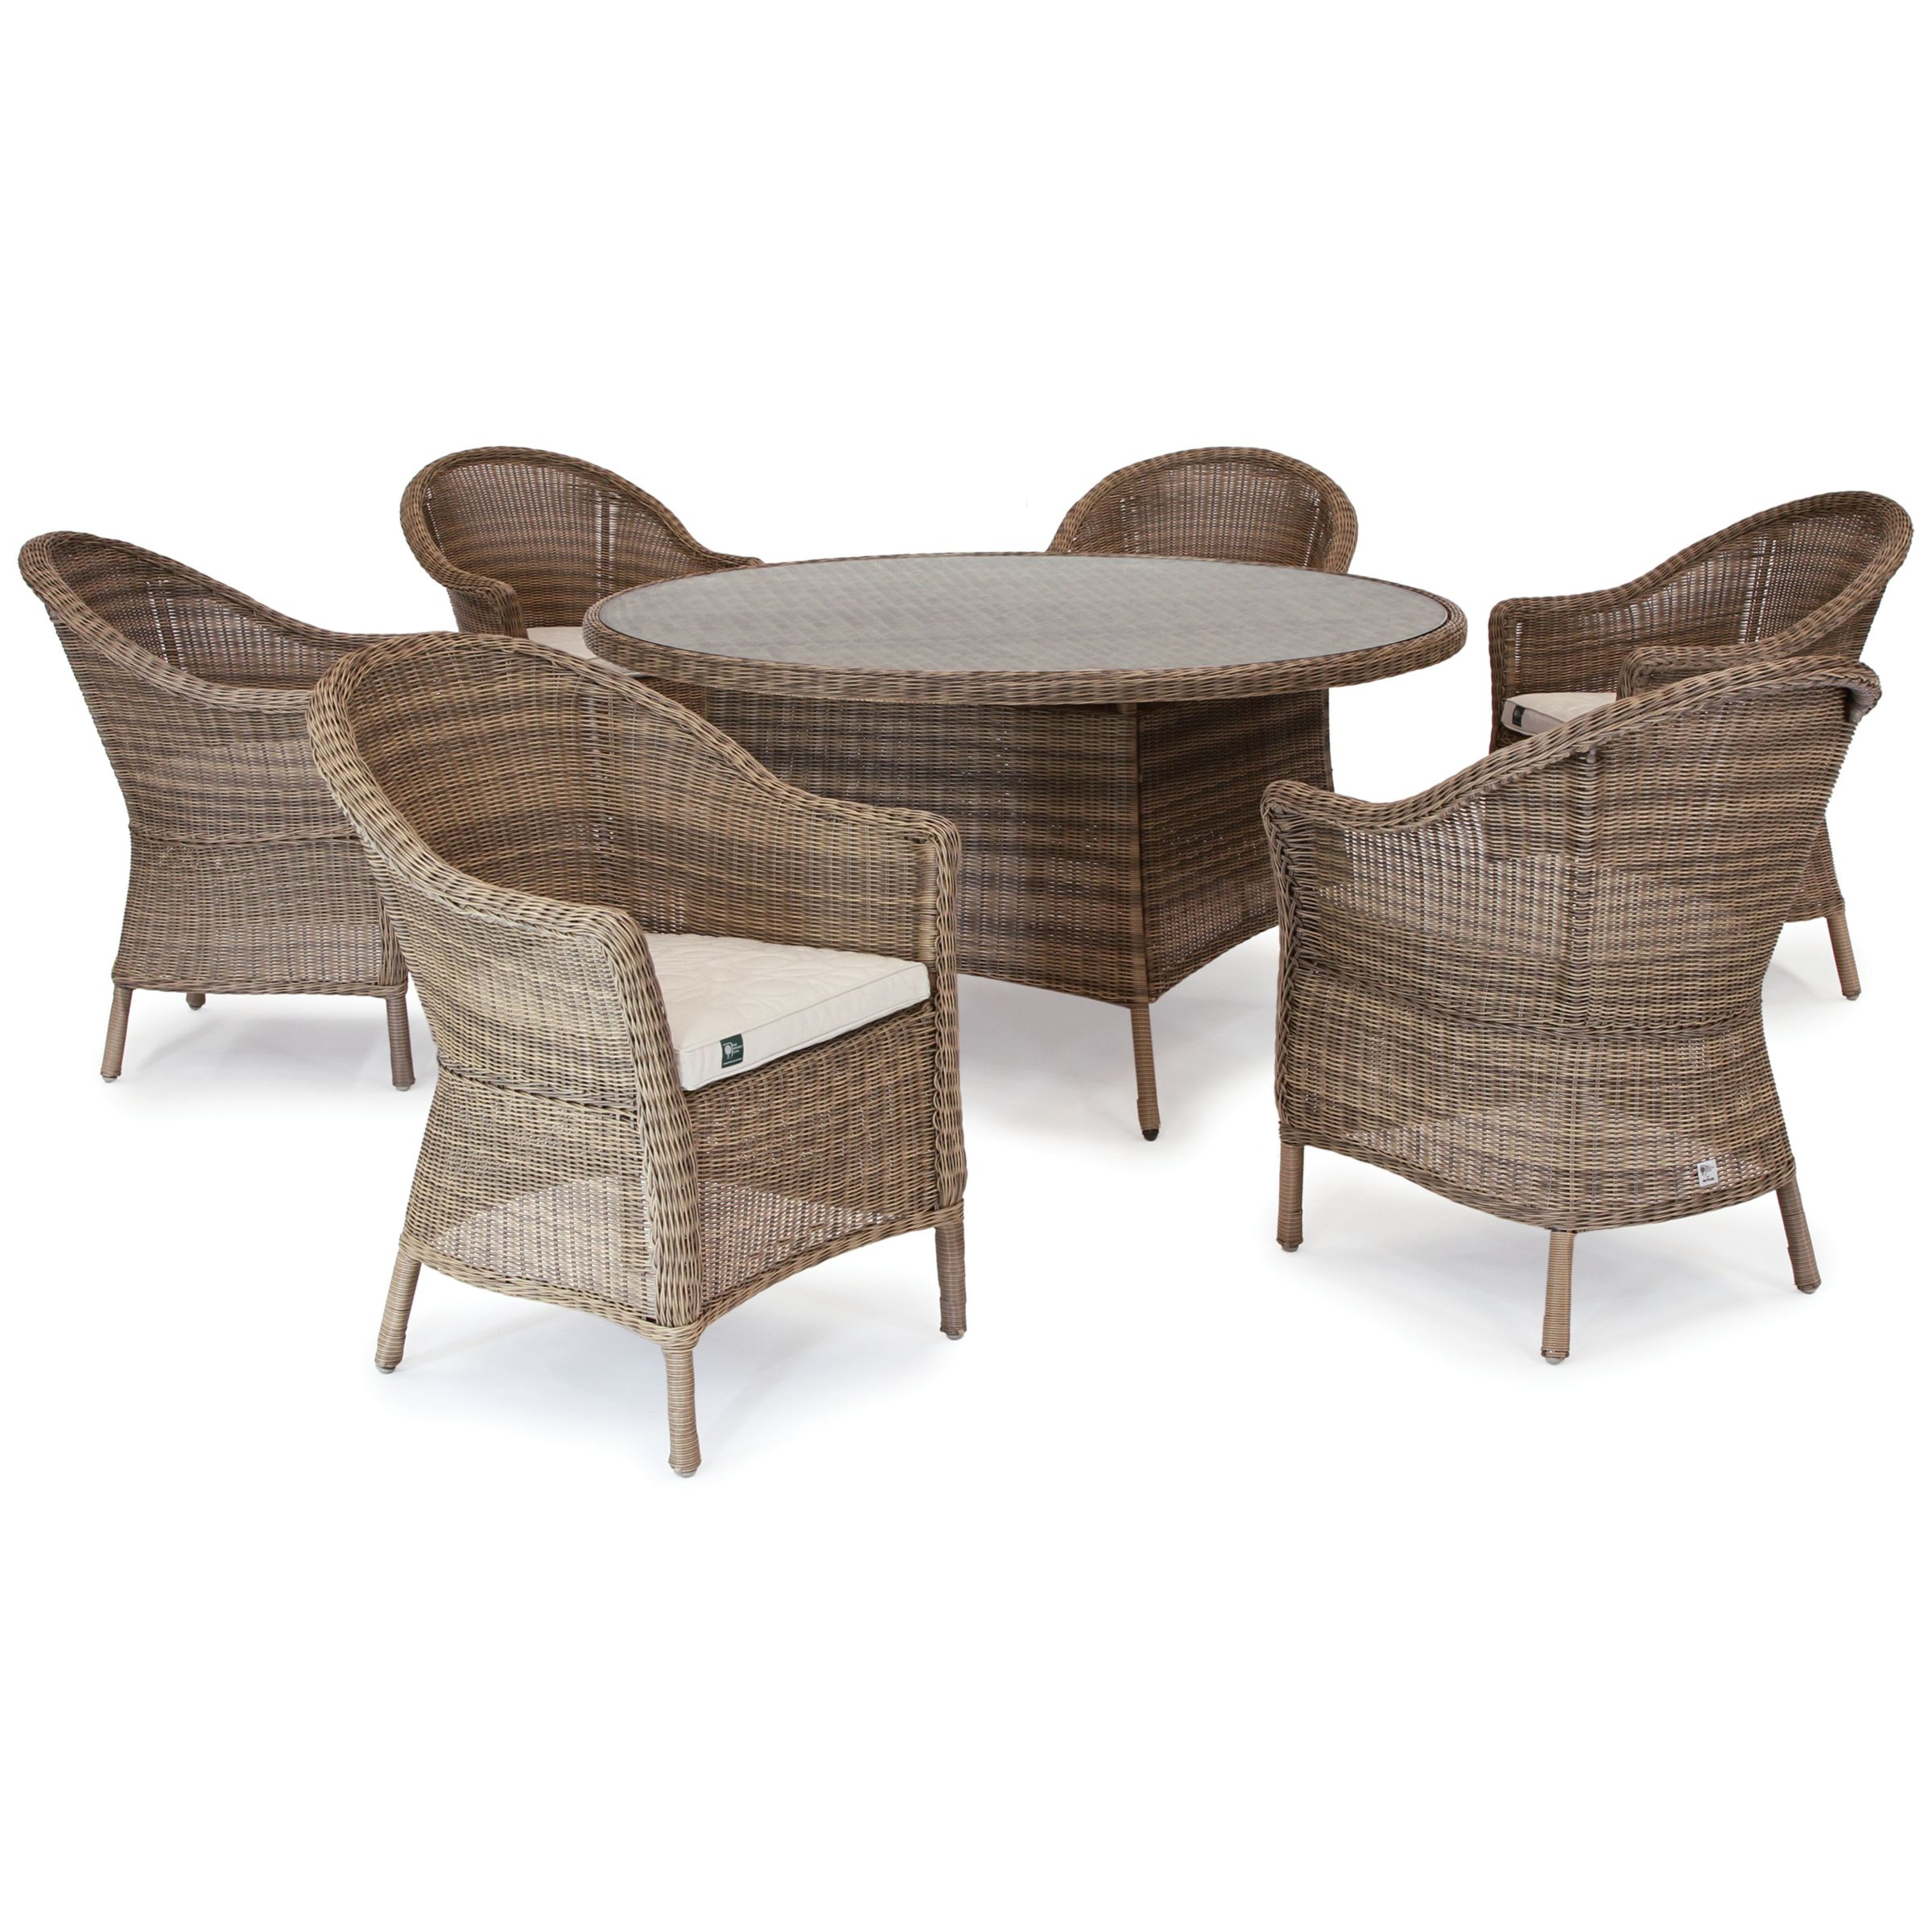 Kettler KETTLER RHS Harlow Carr 6 Seater Garden Dining Table and Chairs Set, Natural